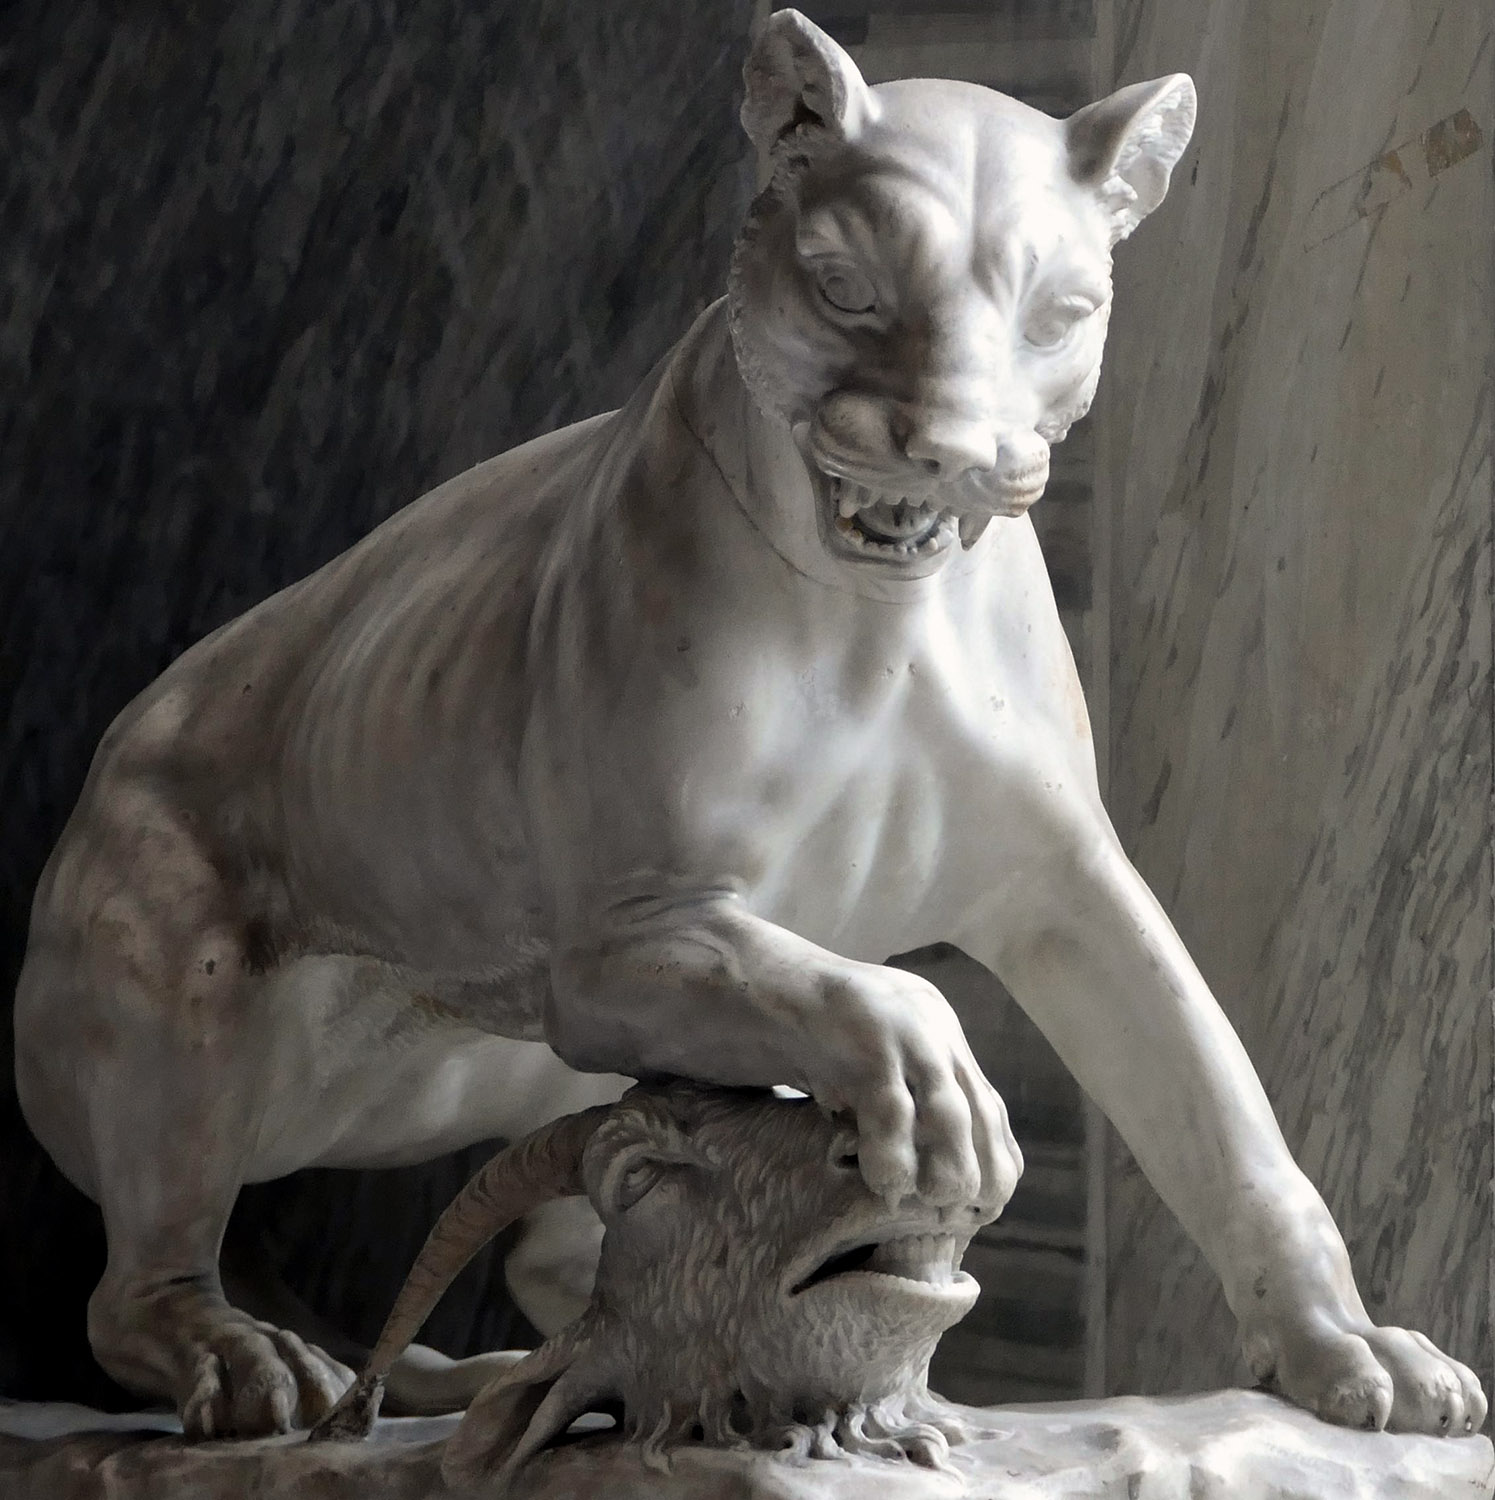 Panther with a goat's head between the legs. Marble. Roman work, roughly restored in the 18th cent. Inv. No. 516. Rome, Vatican Museums, Pius-Clementine Museum, Room of the Animals, 12